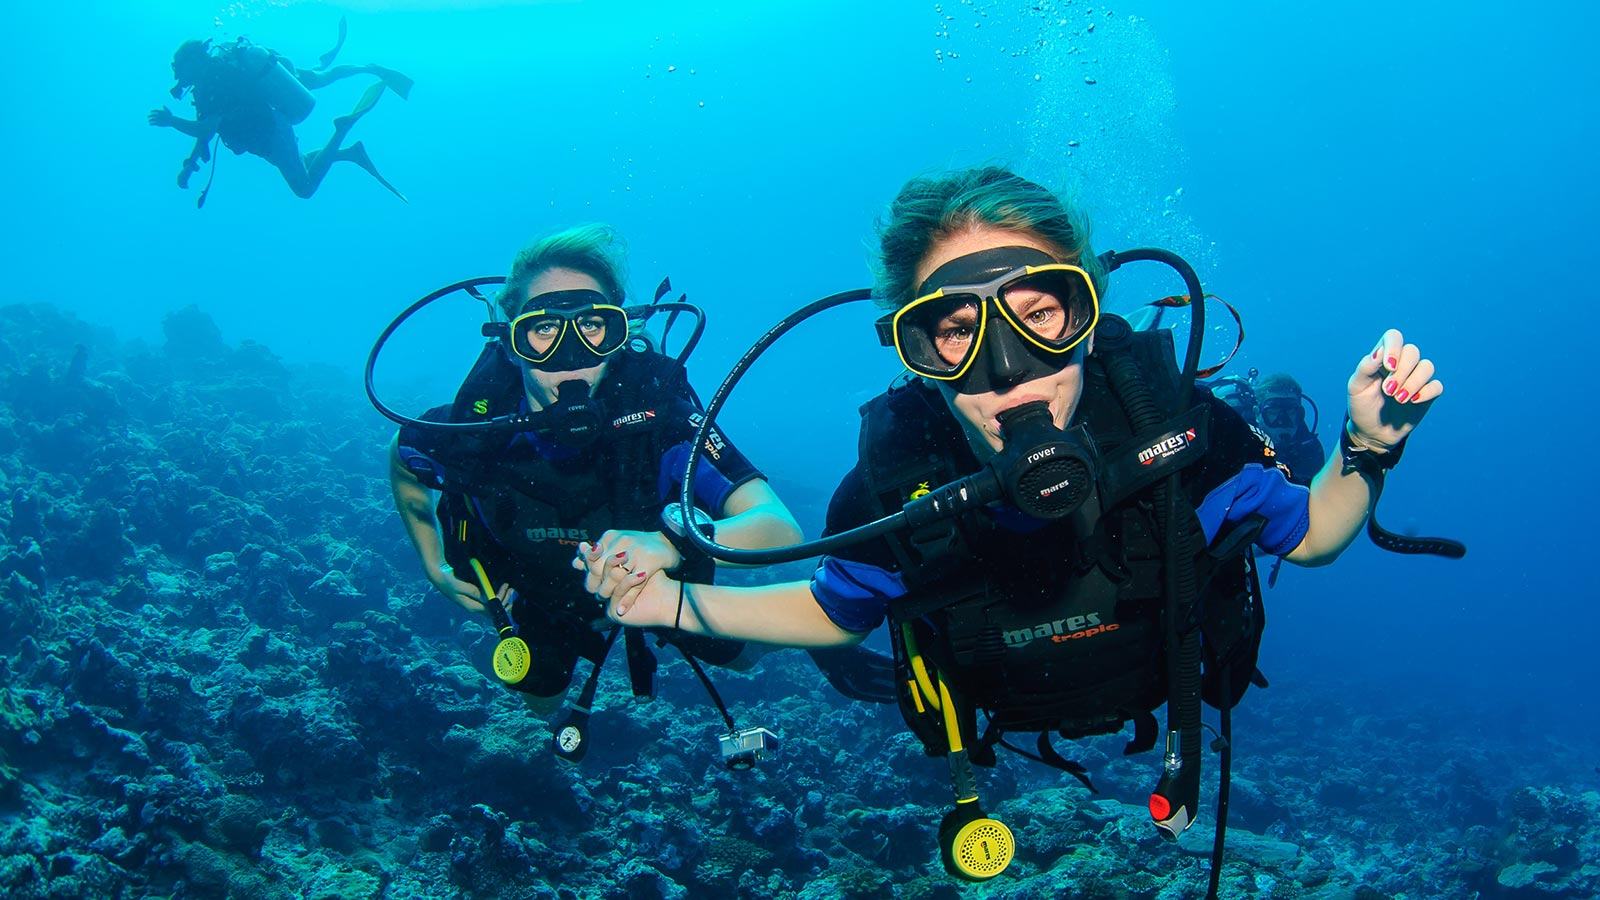 Bali Scuba Diving Package - YOEXPLORE.co.id